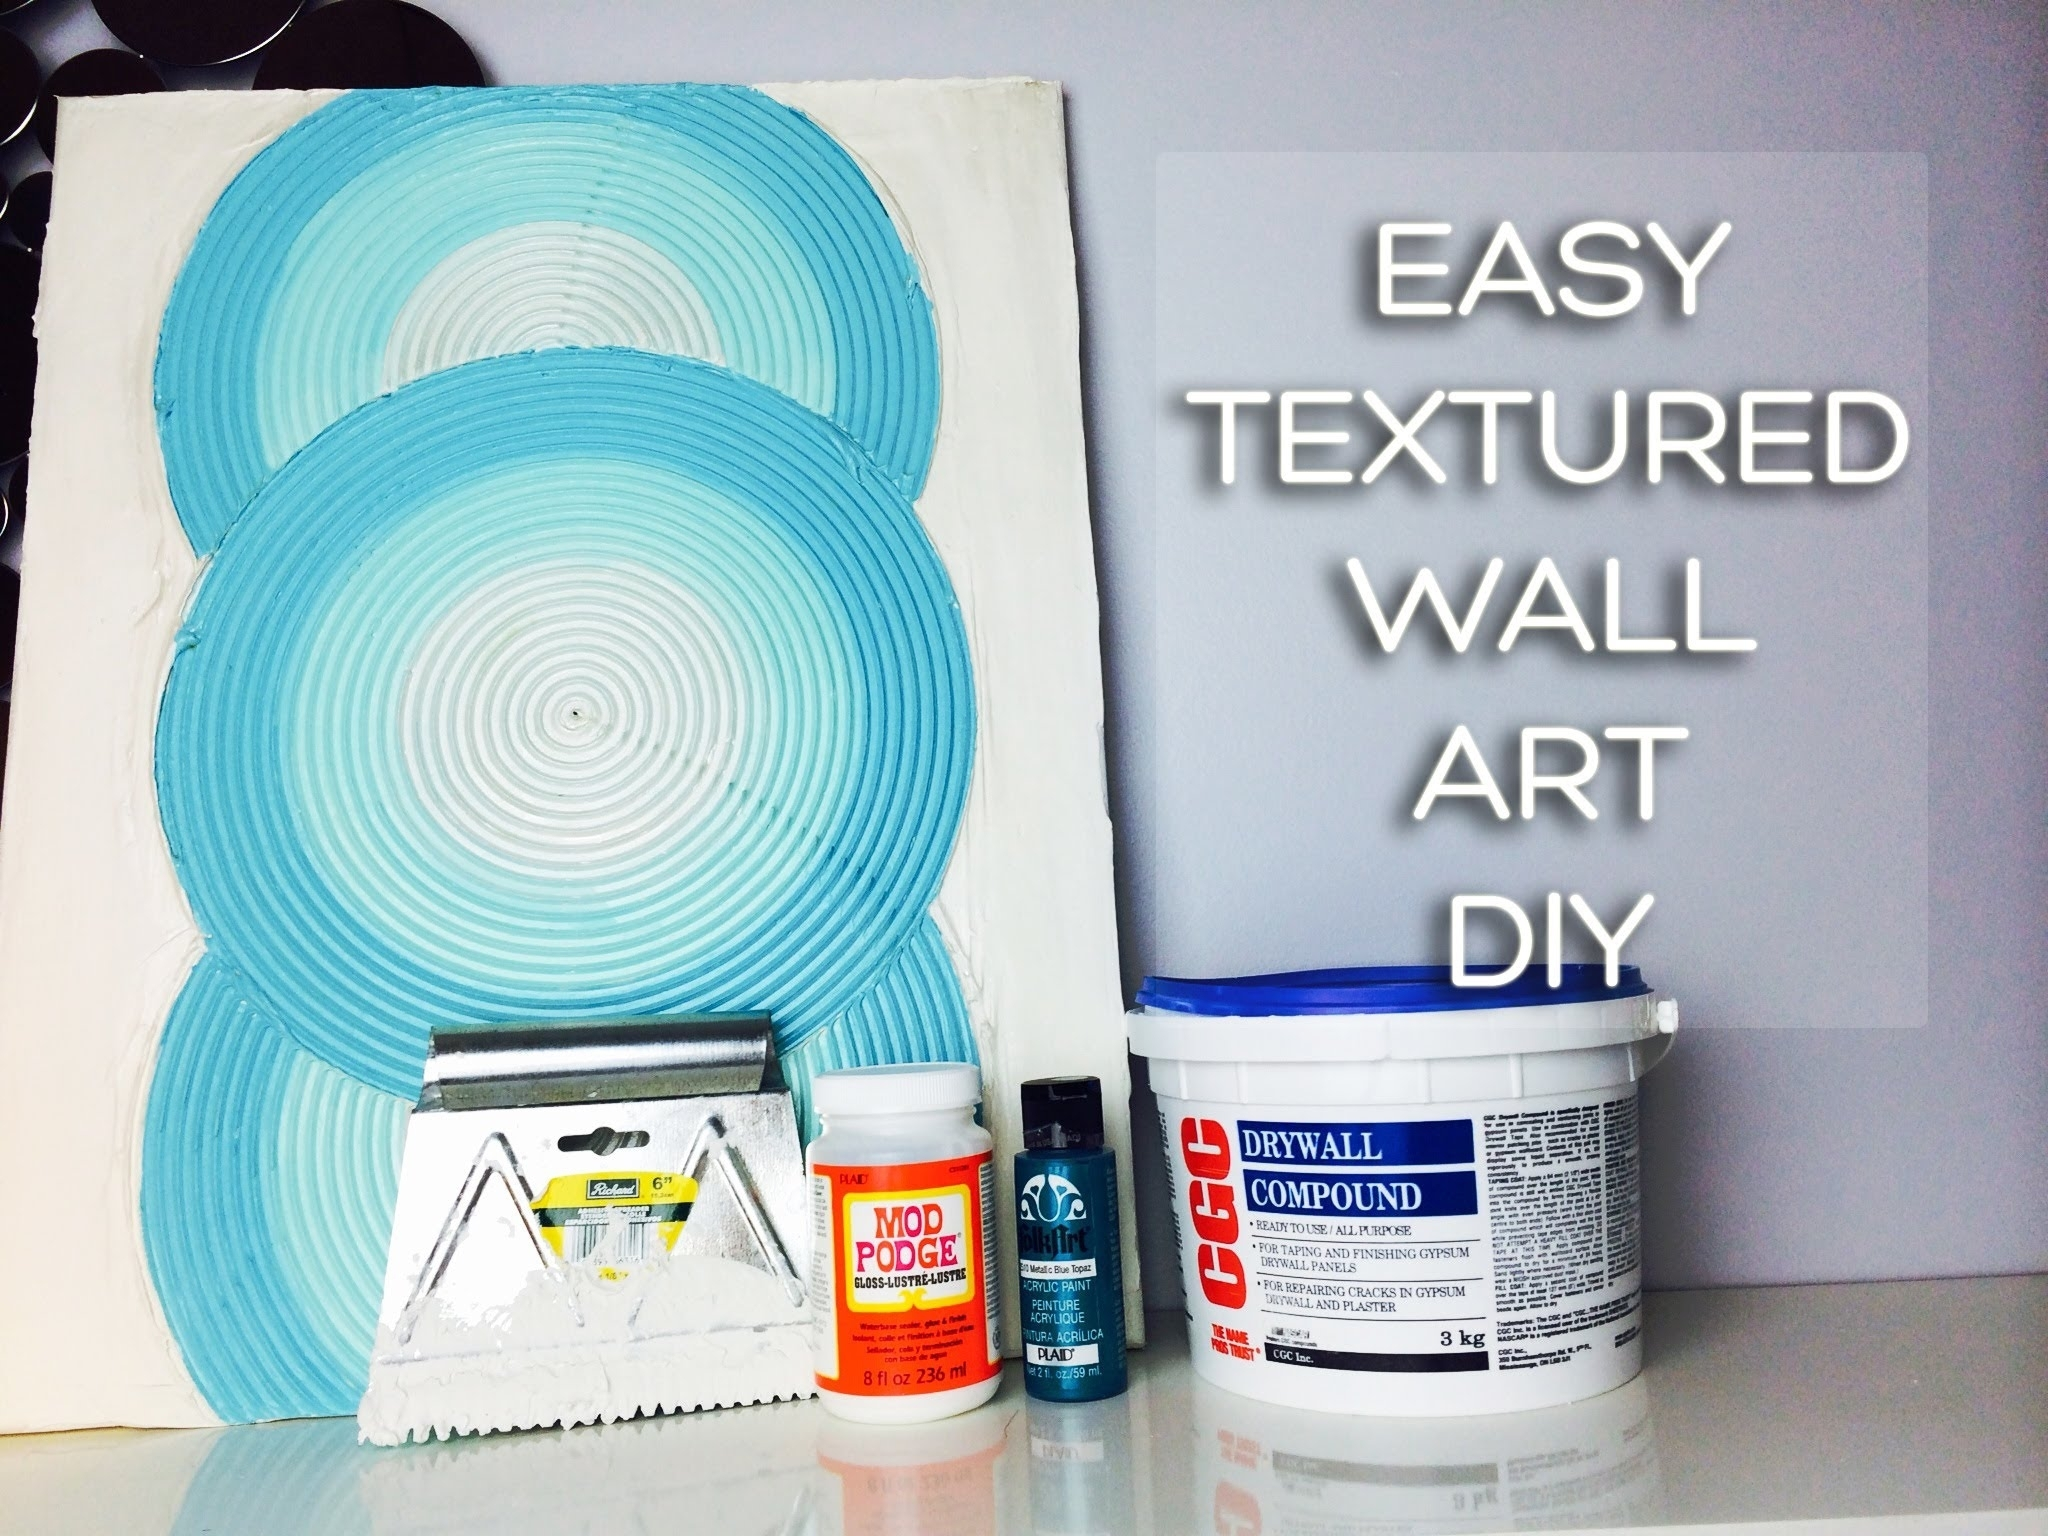 Try A New Medium Drywall Mud Can Be Used On Canvas Or Walls For Latest Textured Fabric Wall Art (View 8 of 15)